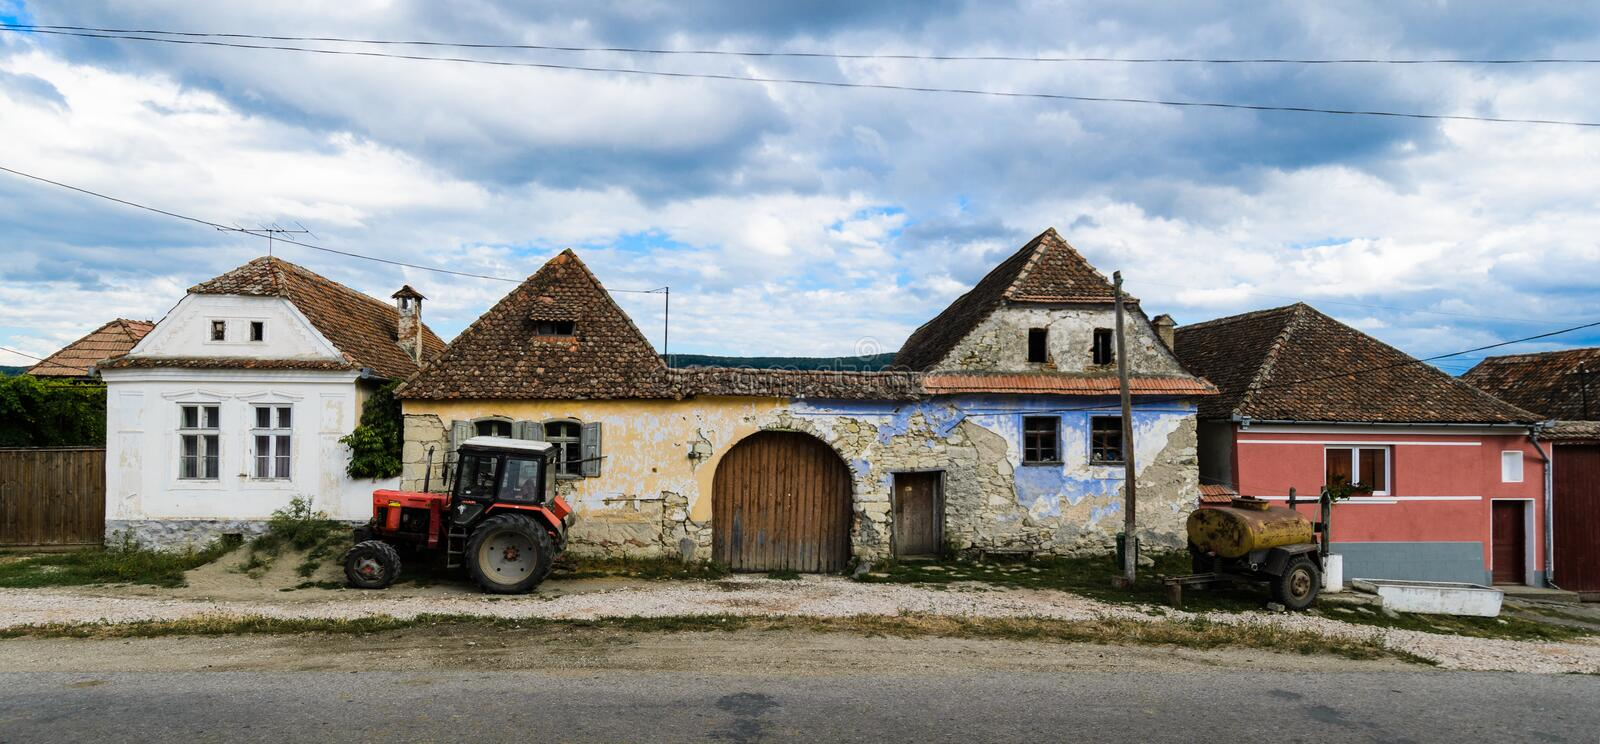 Rural semidetached house with agricultural machinery stock images